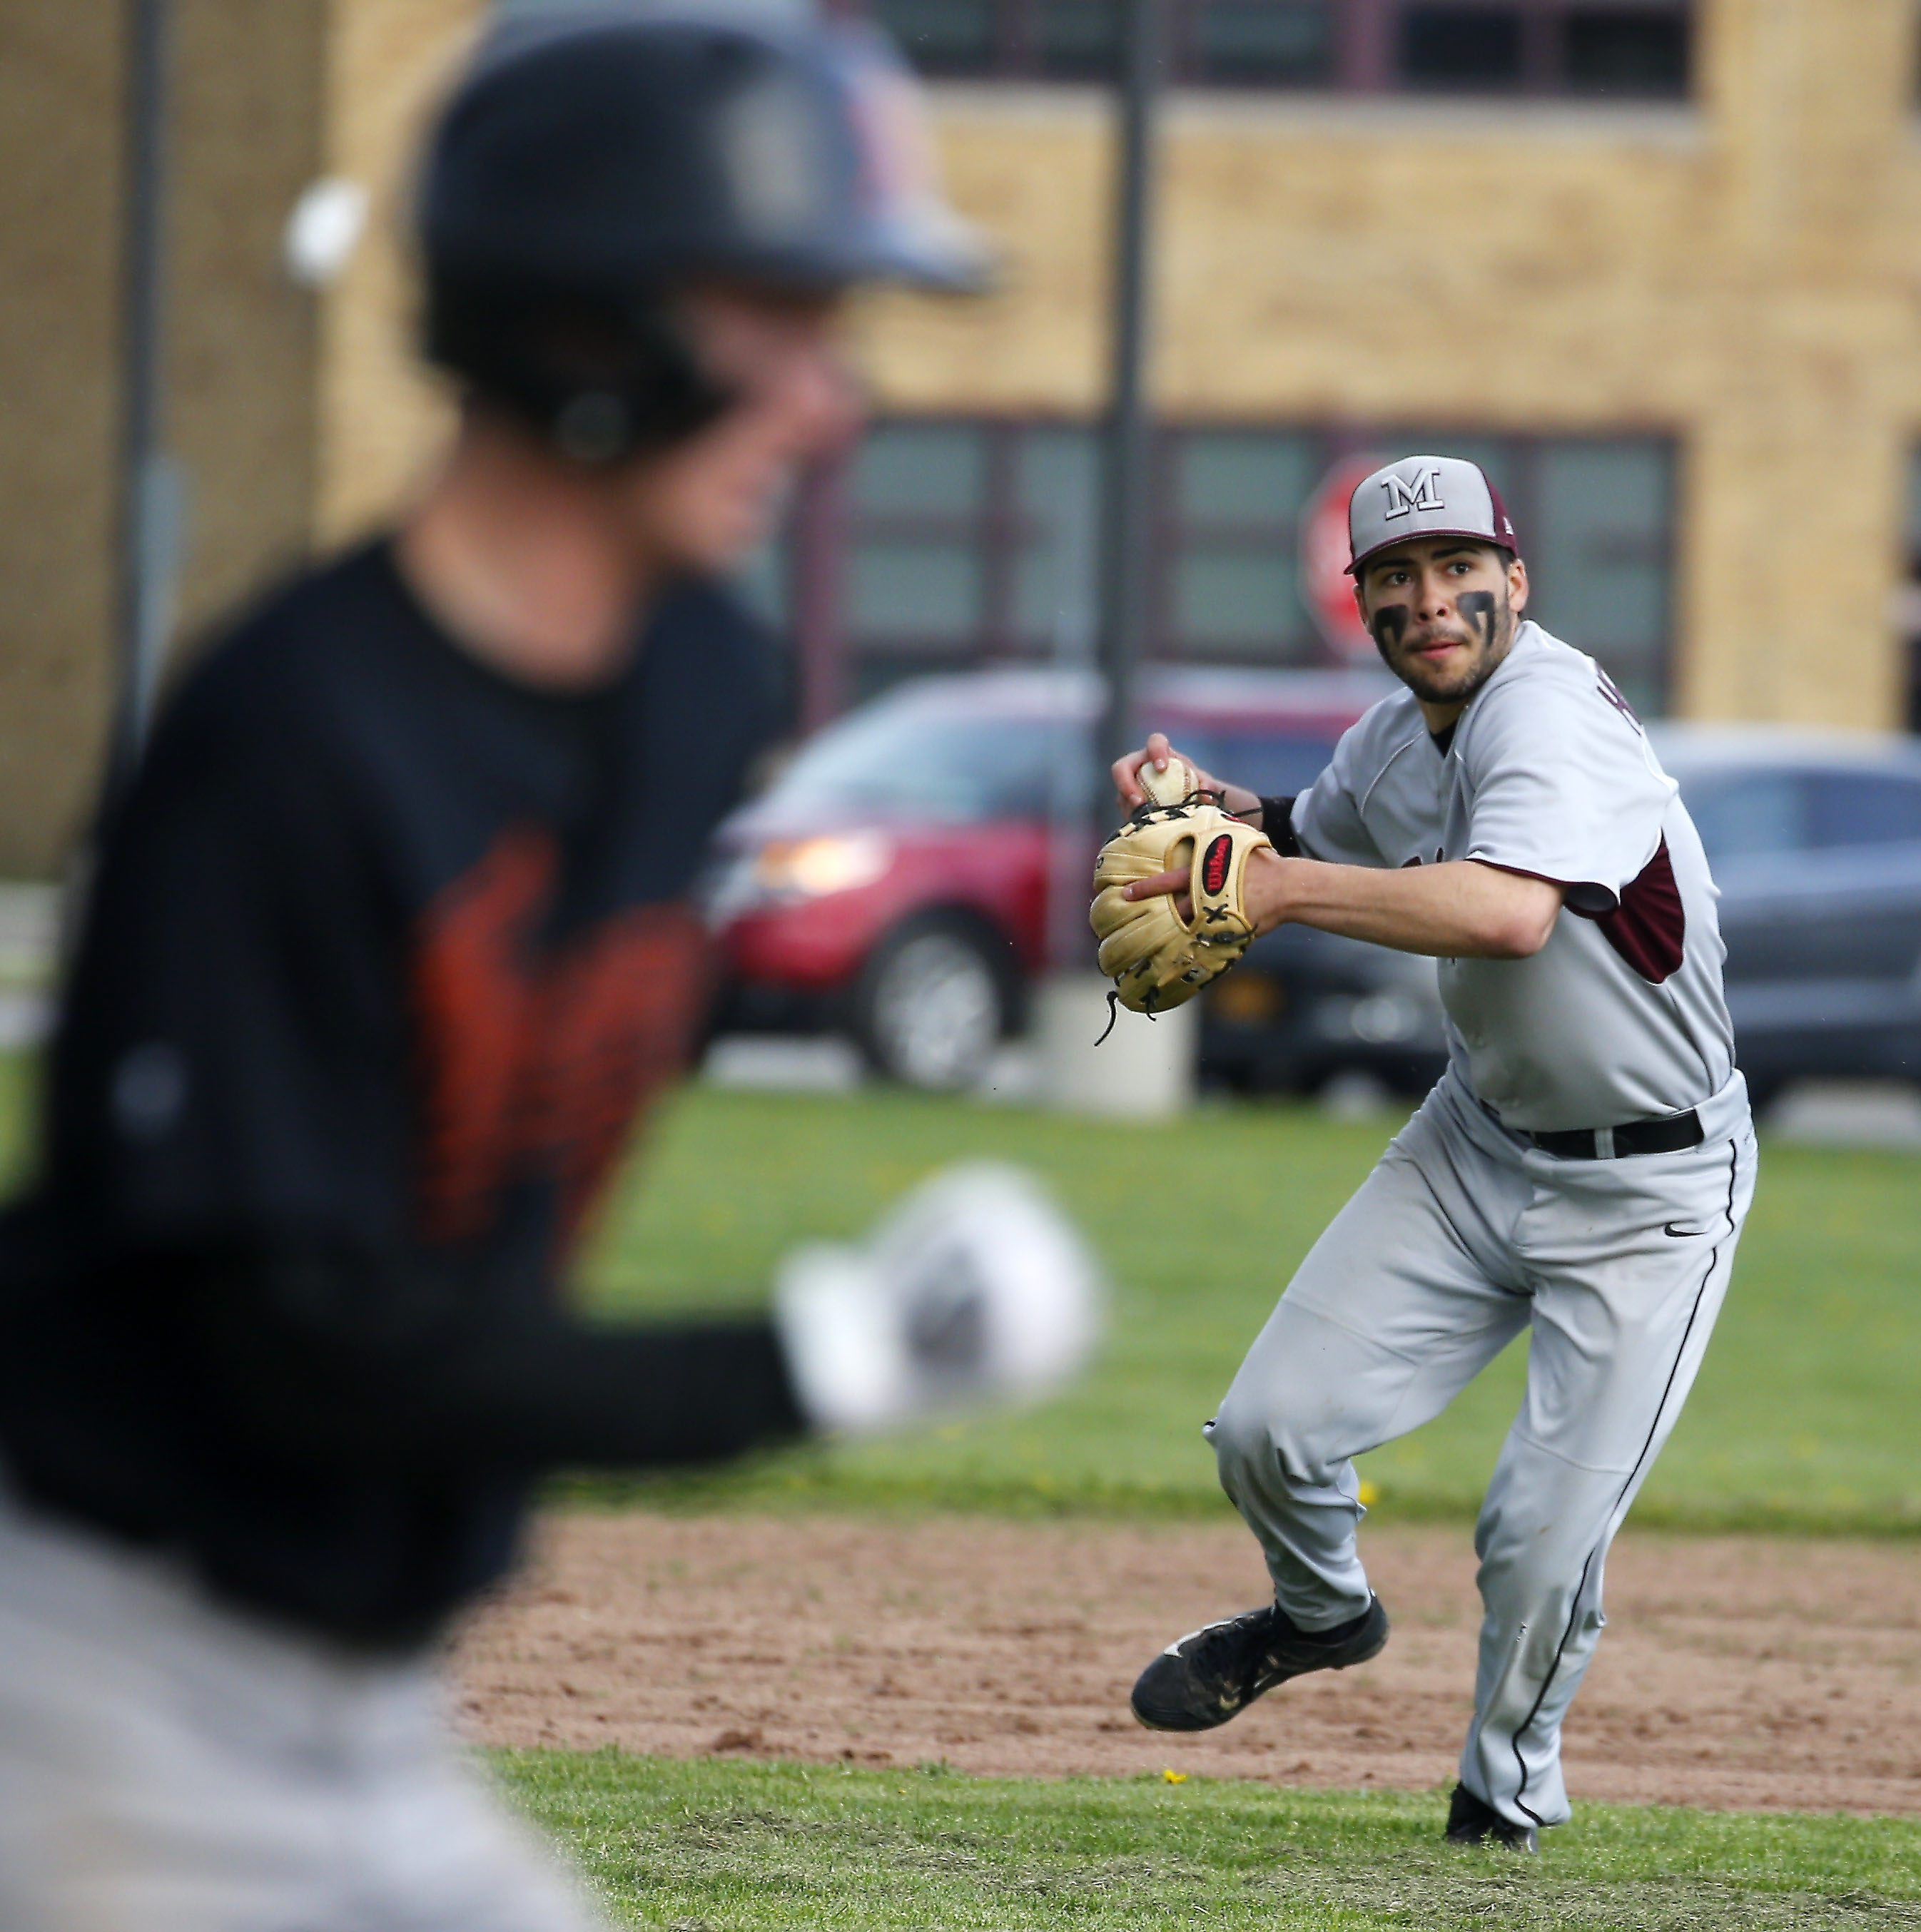 Maryvale's Anthony Hernandez makes an errant throw to first, allowing Amherst to score the winning run.